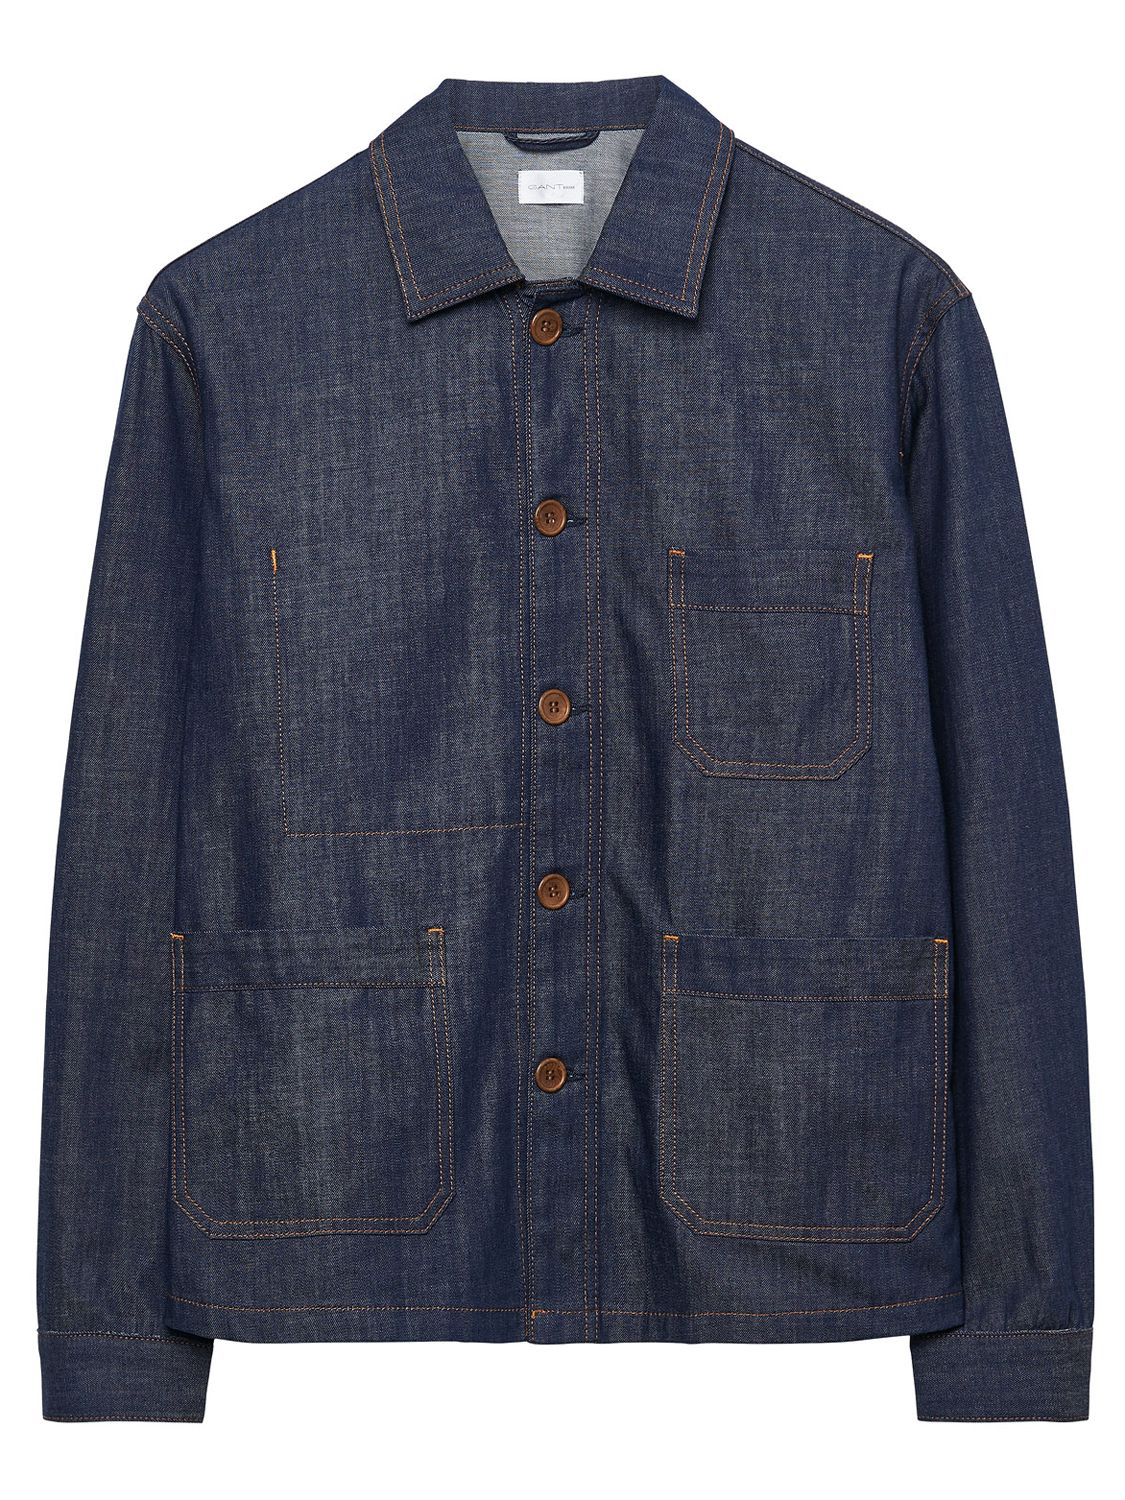 Gant Rugger Gant Rugger Denim Shirt Jacket, Raw Blue